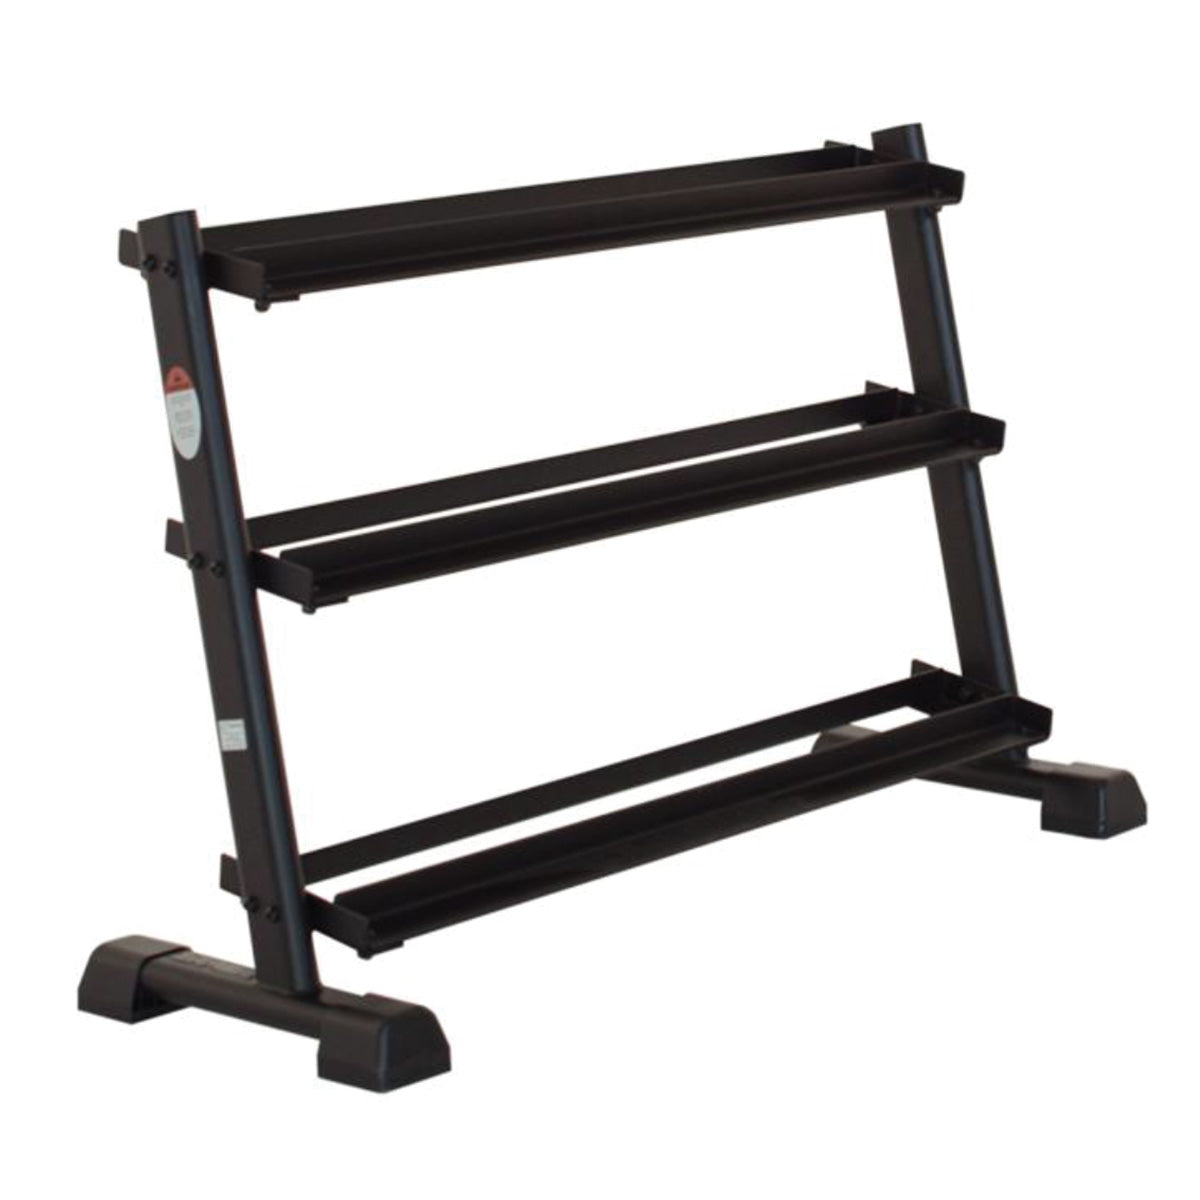 "CGS 3-Tier 52"" Horizontal Dumbbell Rack"